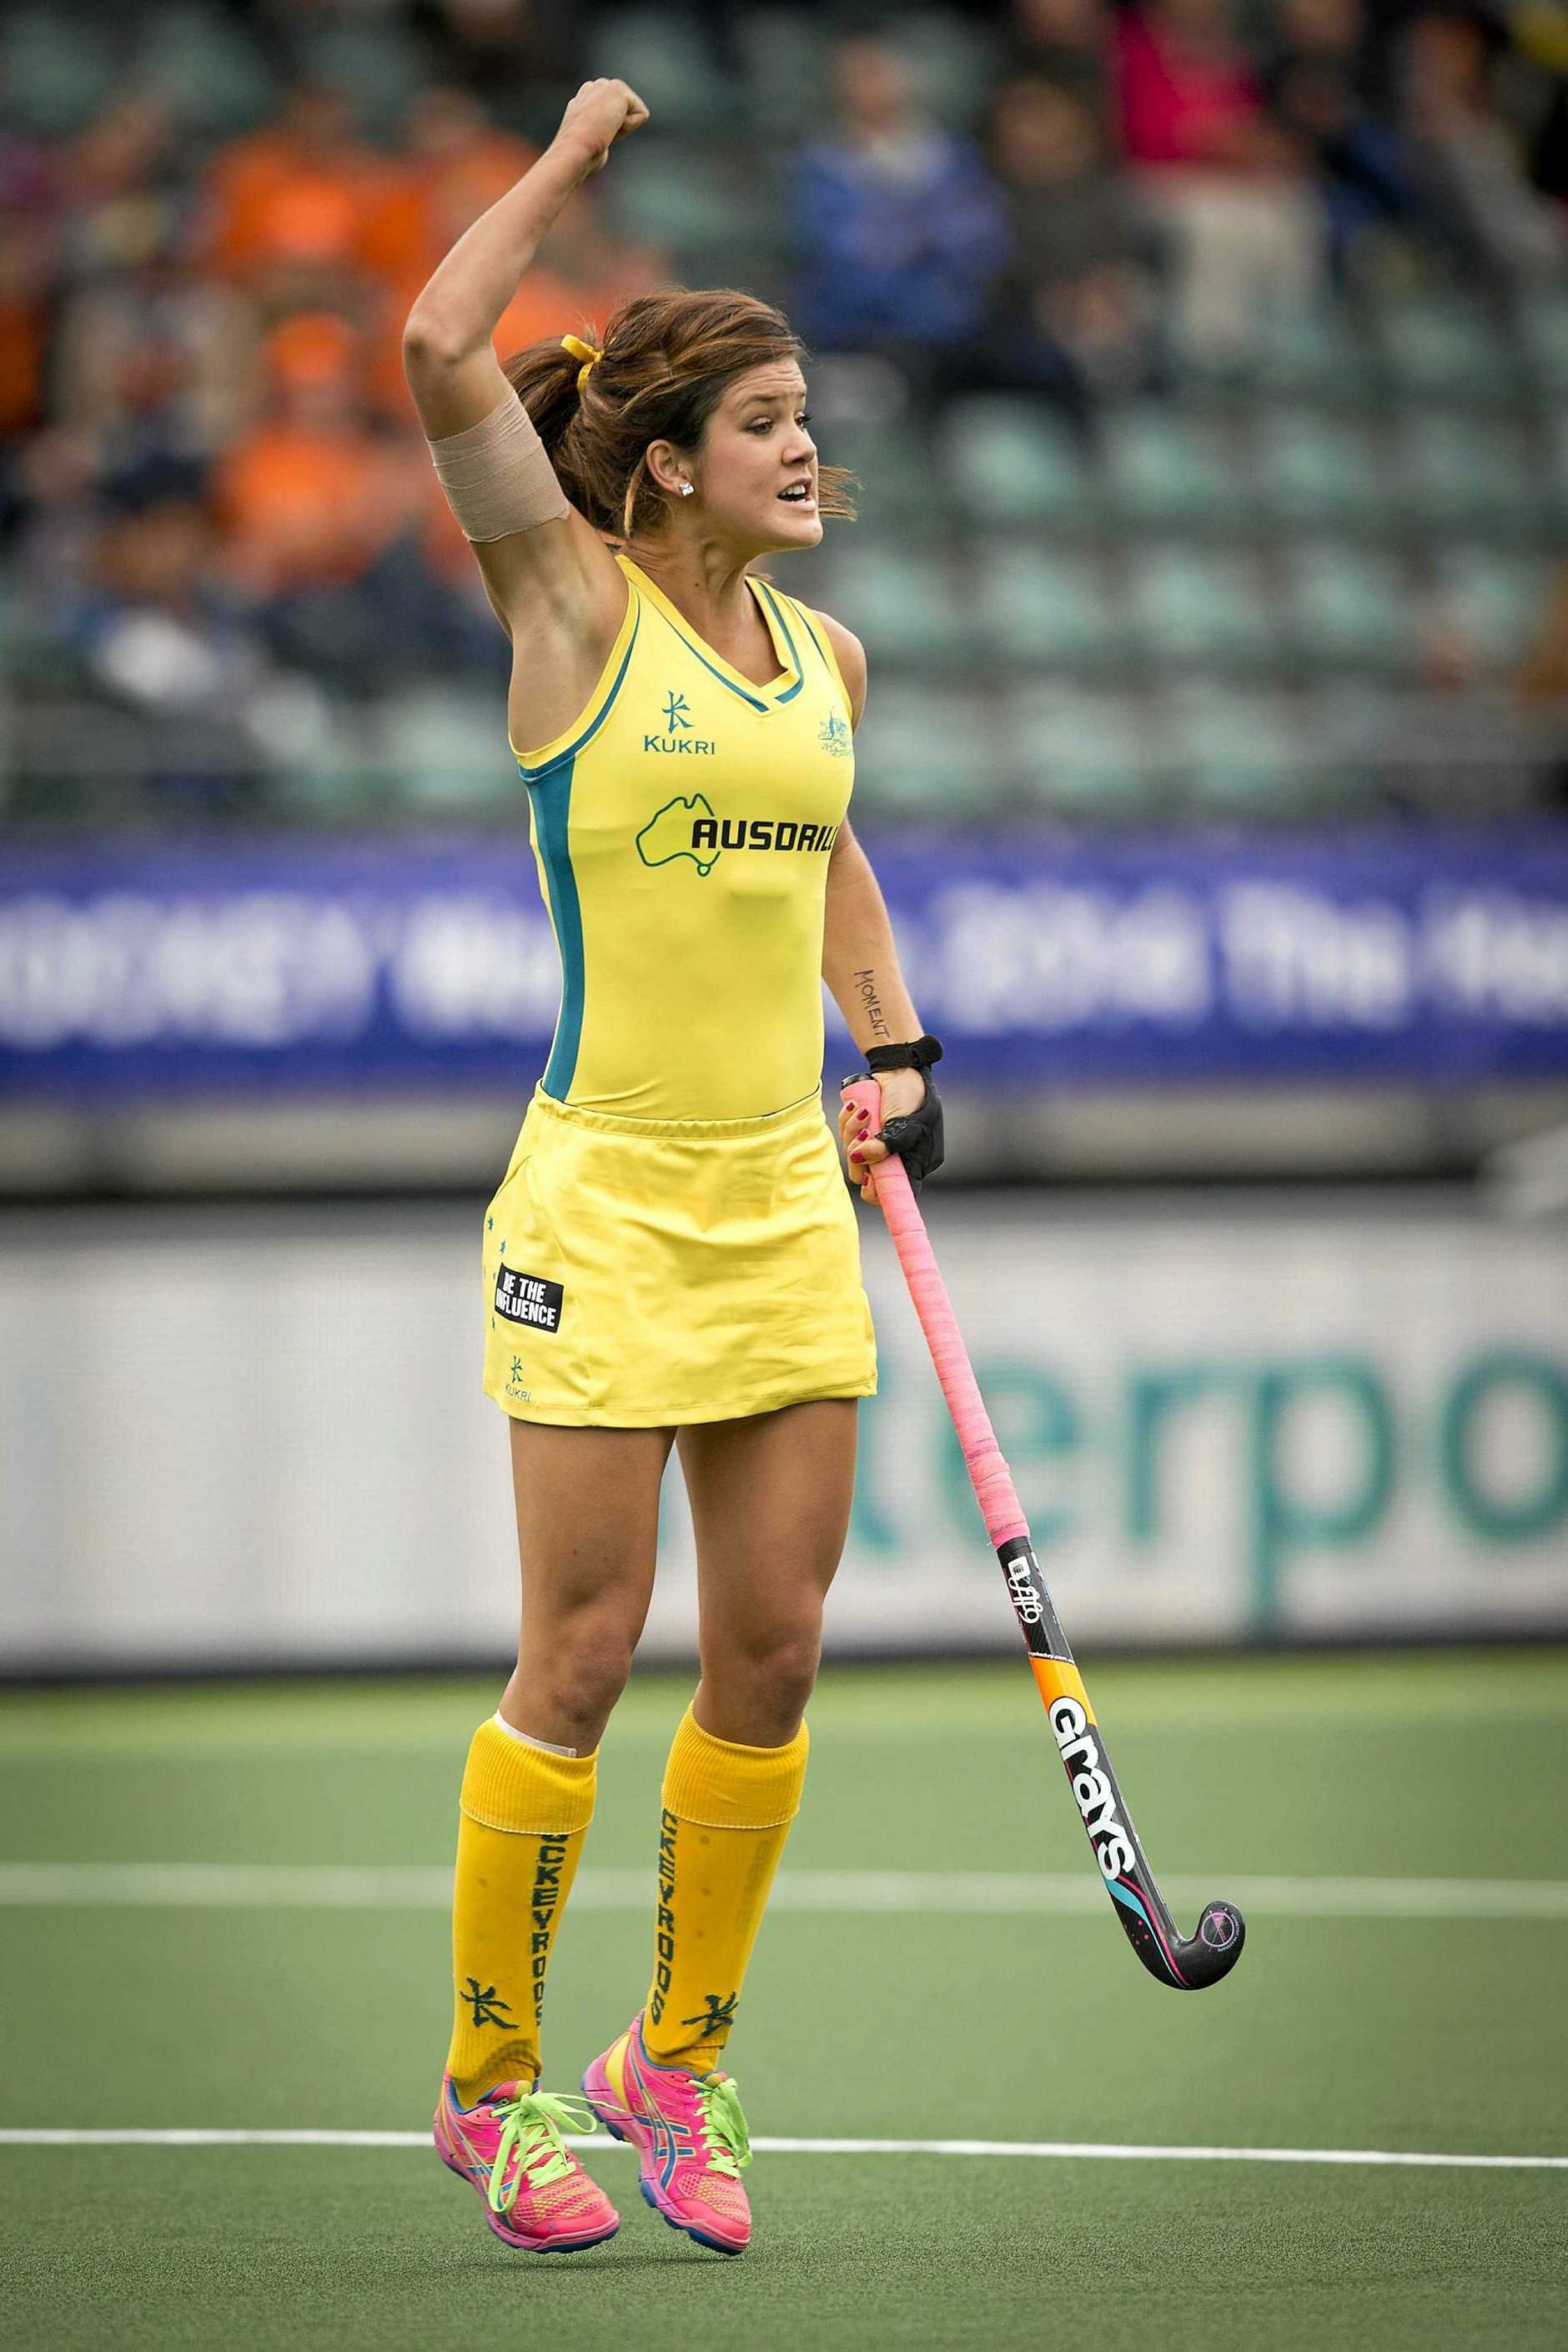 Anna Flanagan of Australia cheers after scoring against Belgium at the 2014 World Cup.